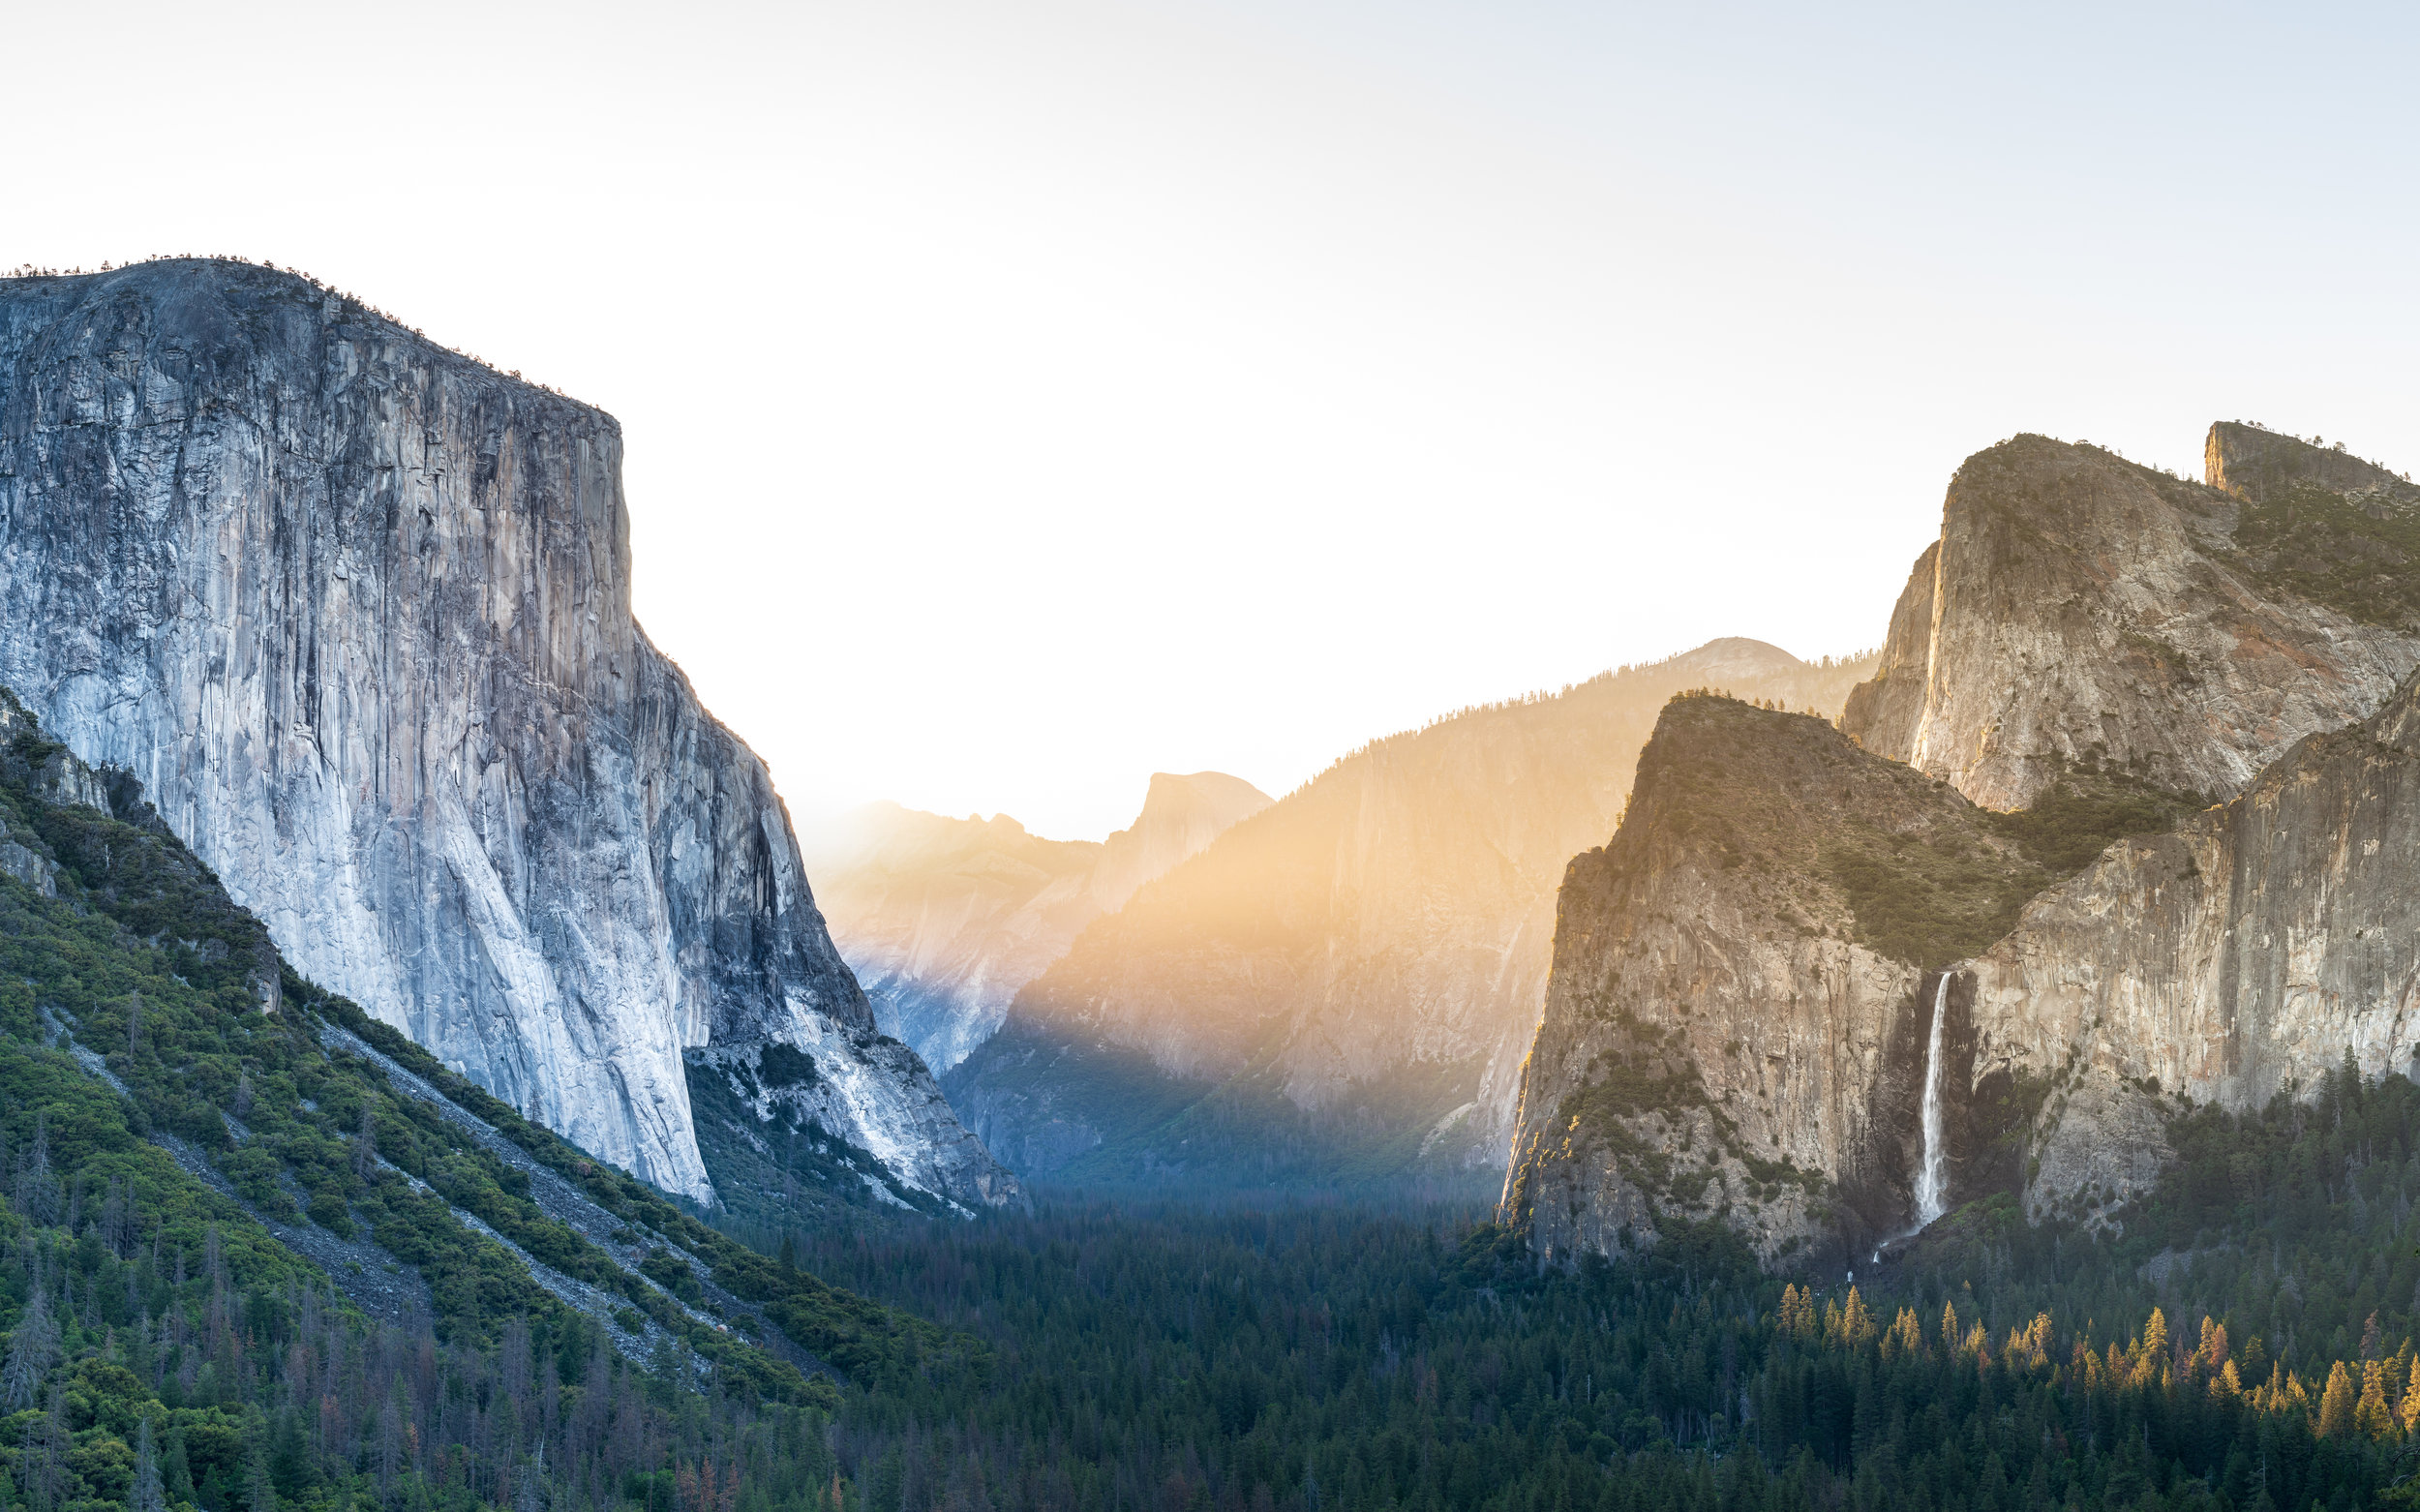 """Yosemite Tunnel View (5 shots Panoramic merge, 1/25 sec at f/8.0, iso64, 70-200mm len @70mm) GPS coordinate: 37°42'56.0""""N 119°40'36.8""""W"""